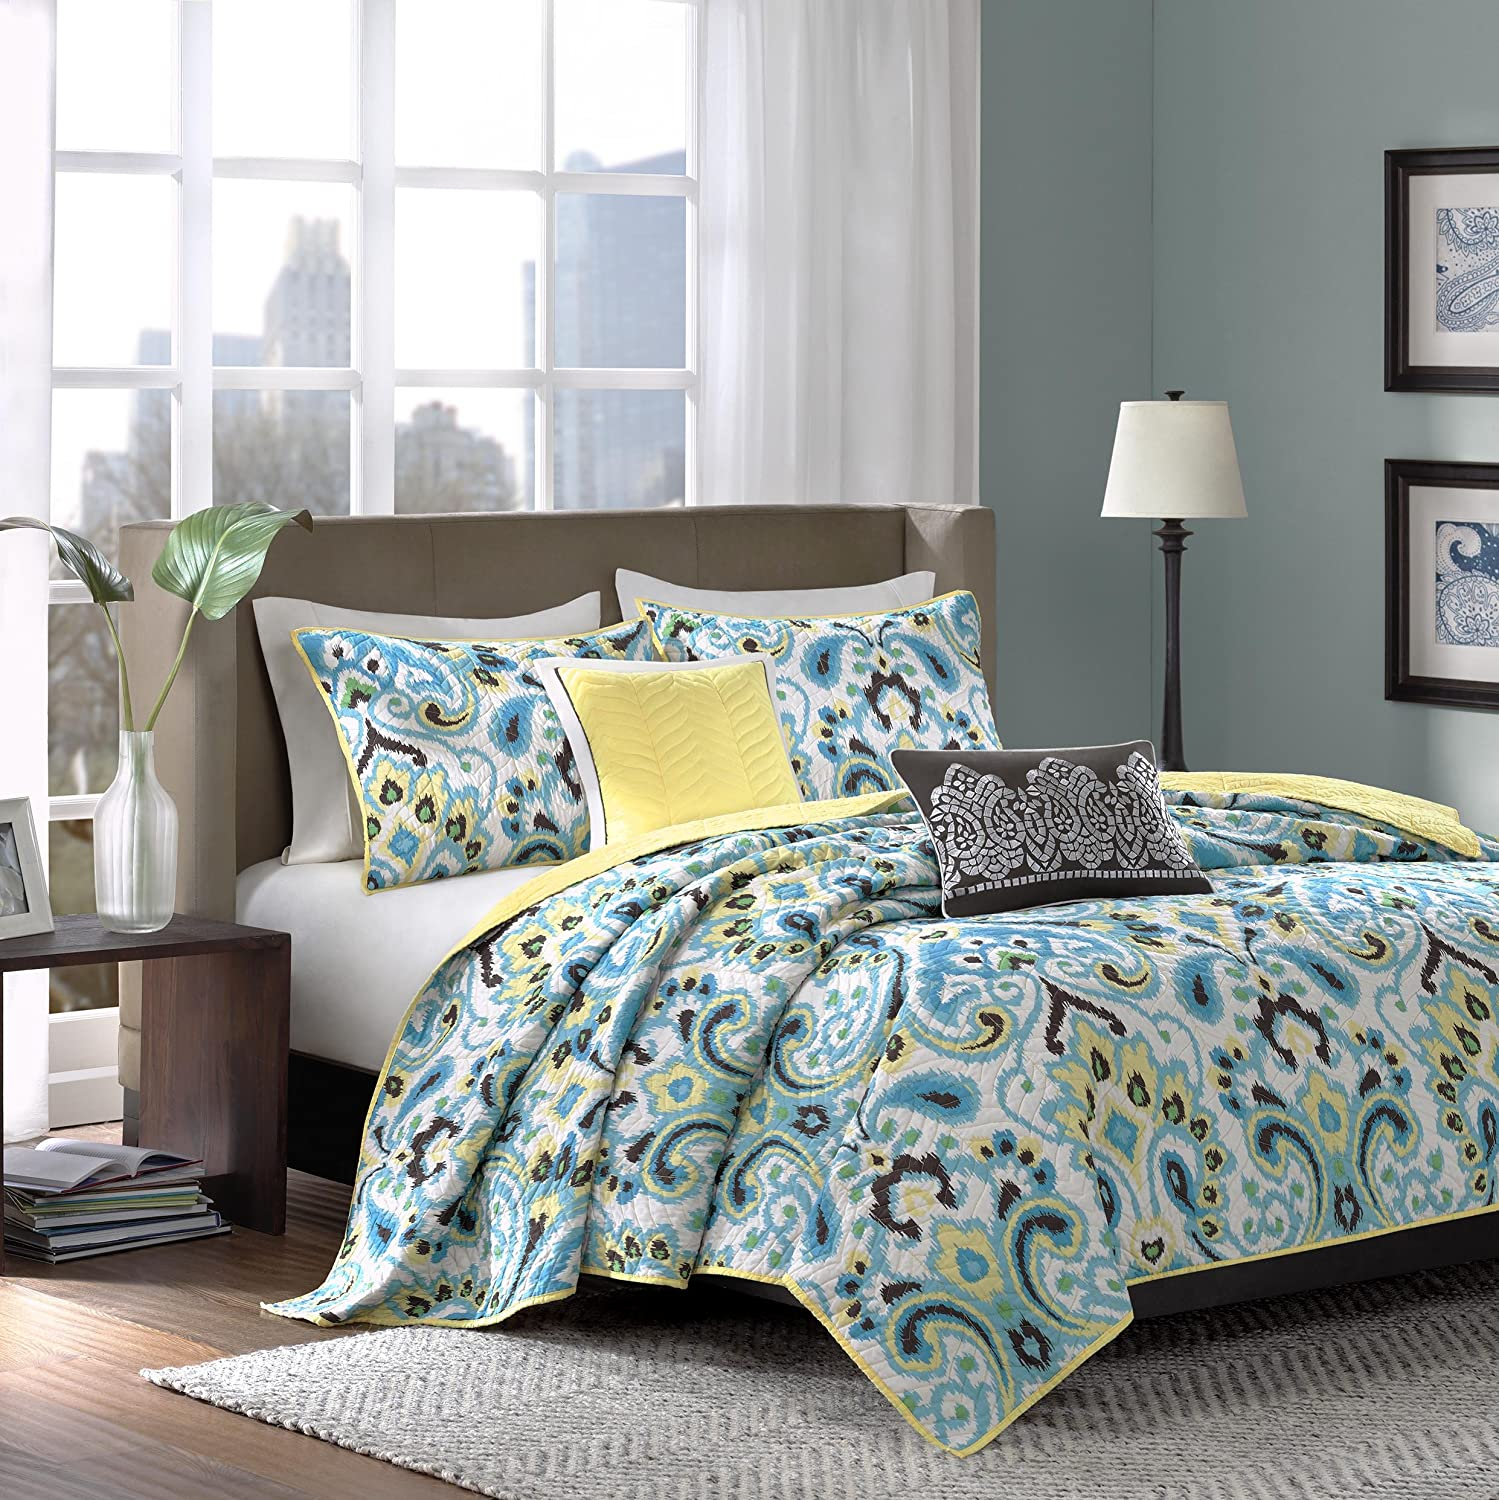 comforter blue hayneedle barrett cfm by piece madison home jla set king jacquard product park sets master